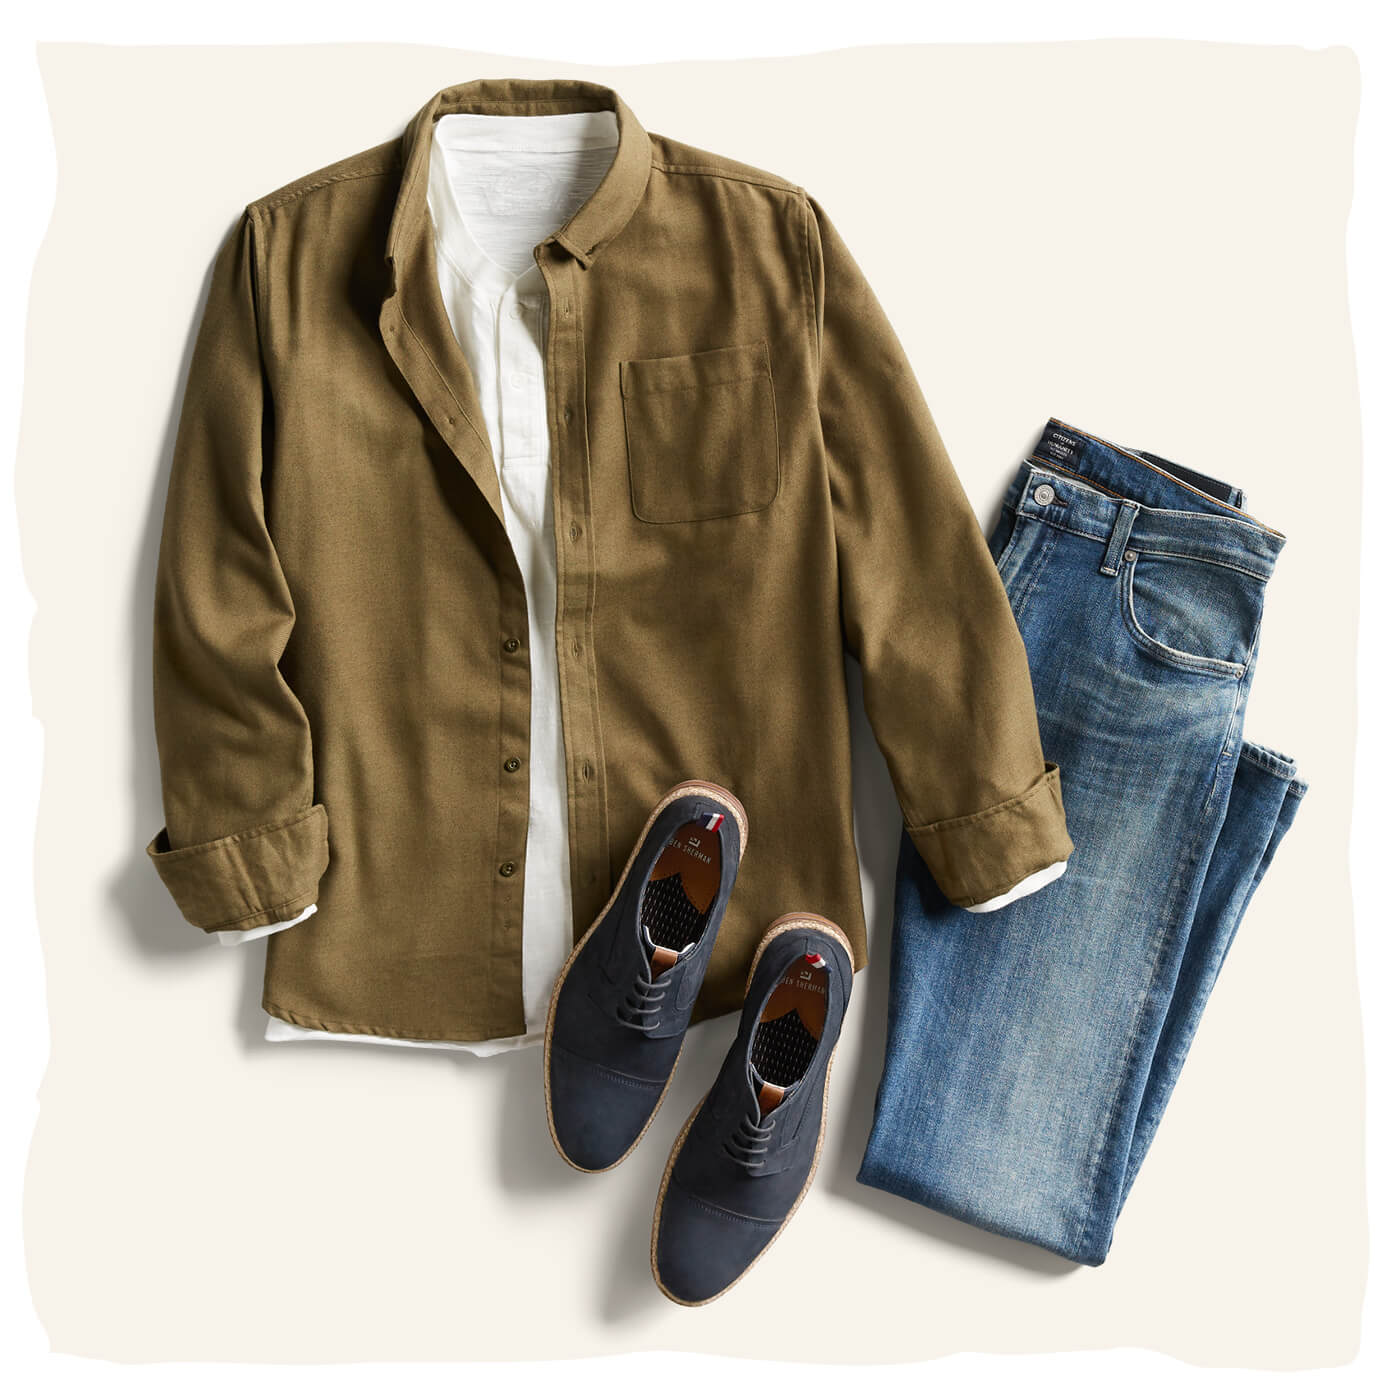 ce9778f5d7d5 The Guide to Casual Summer Outfits